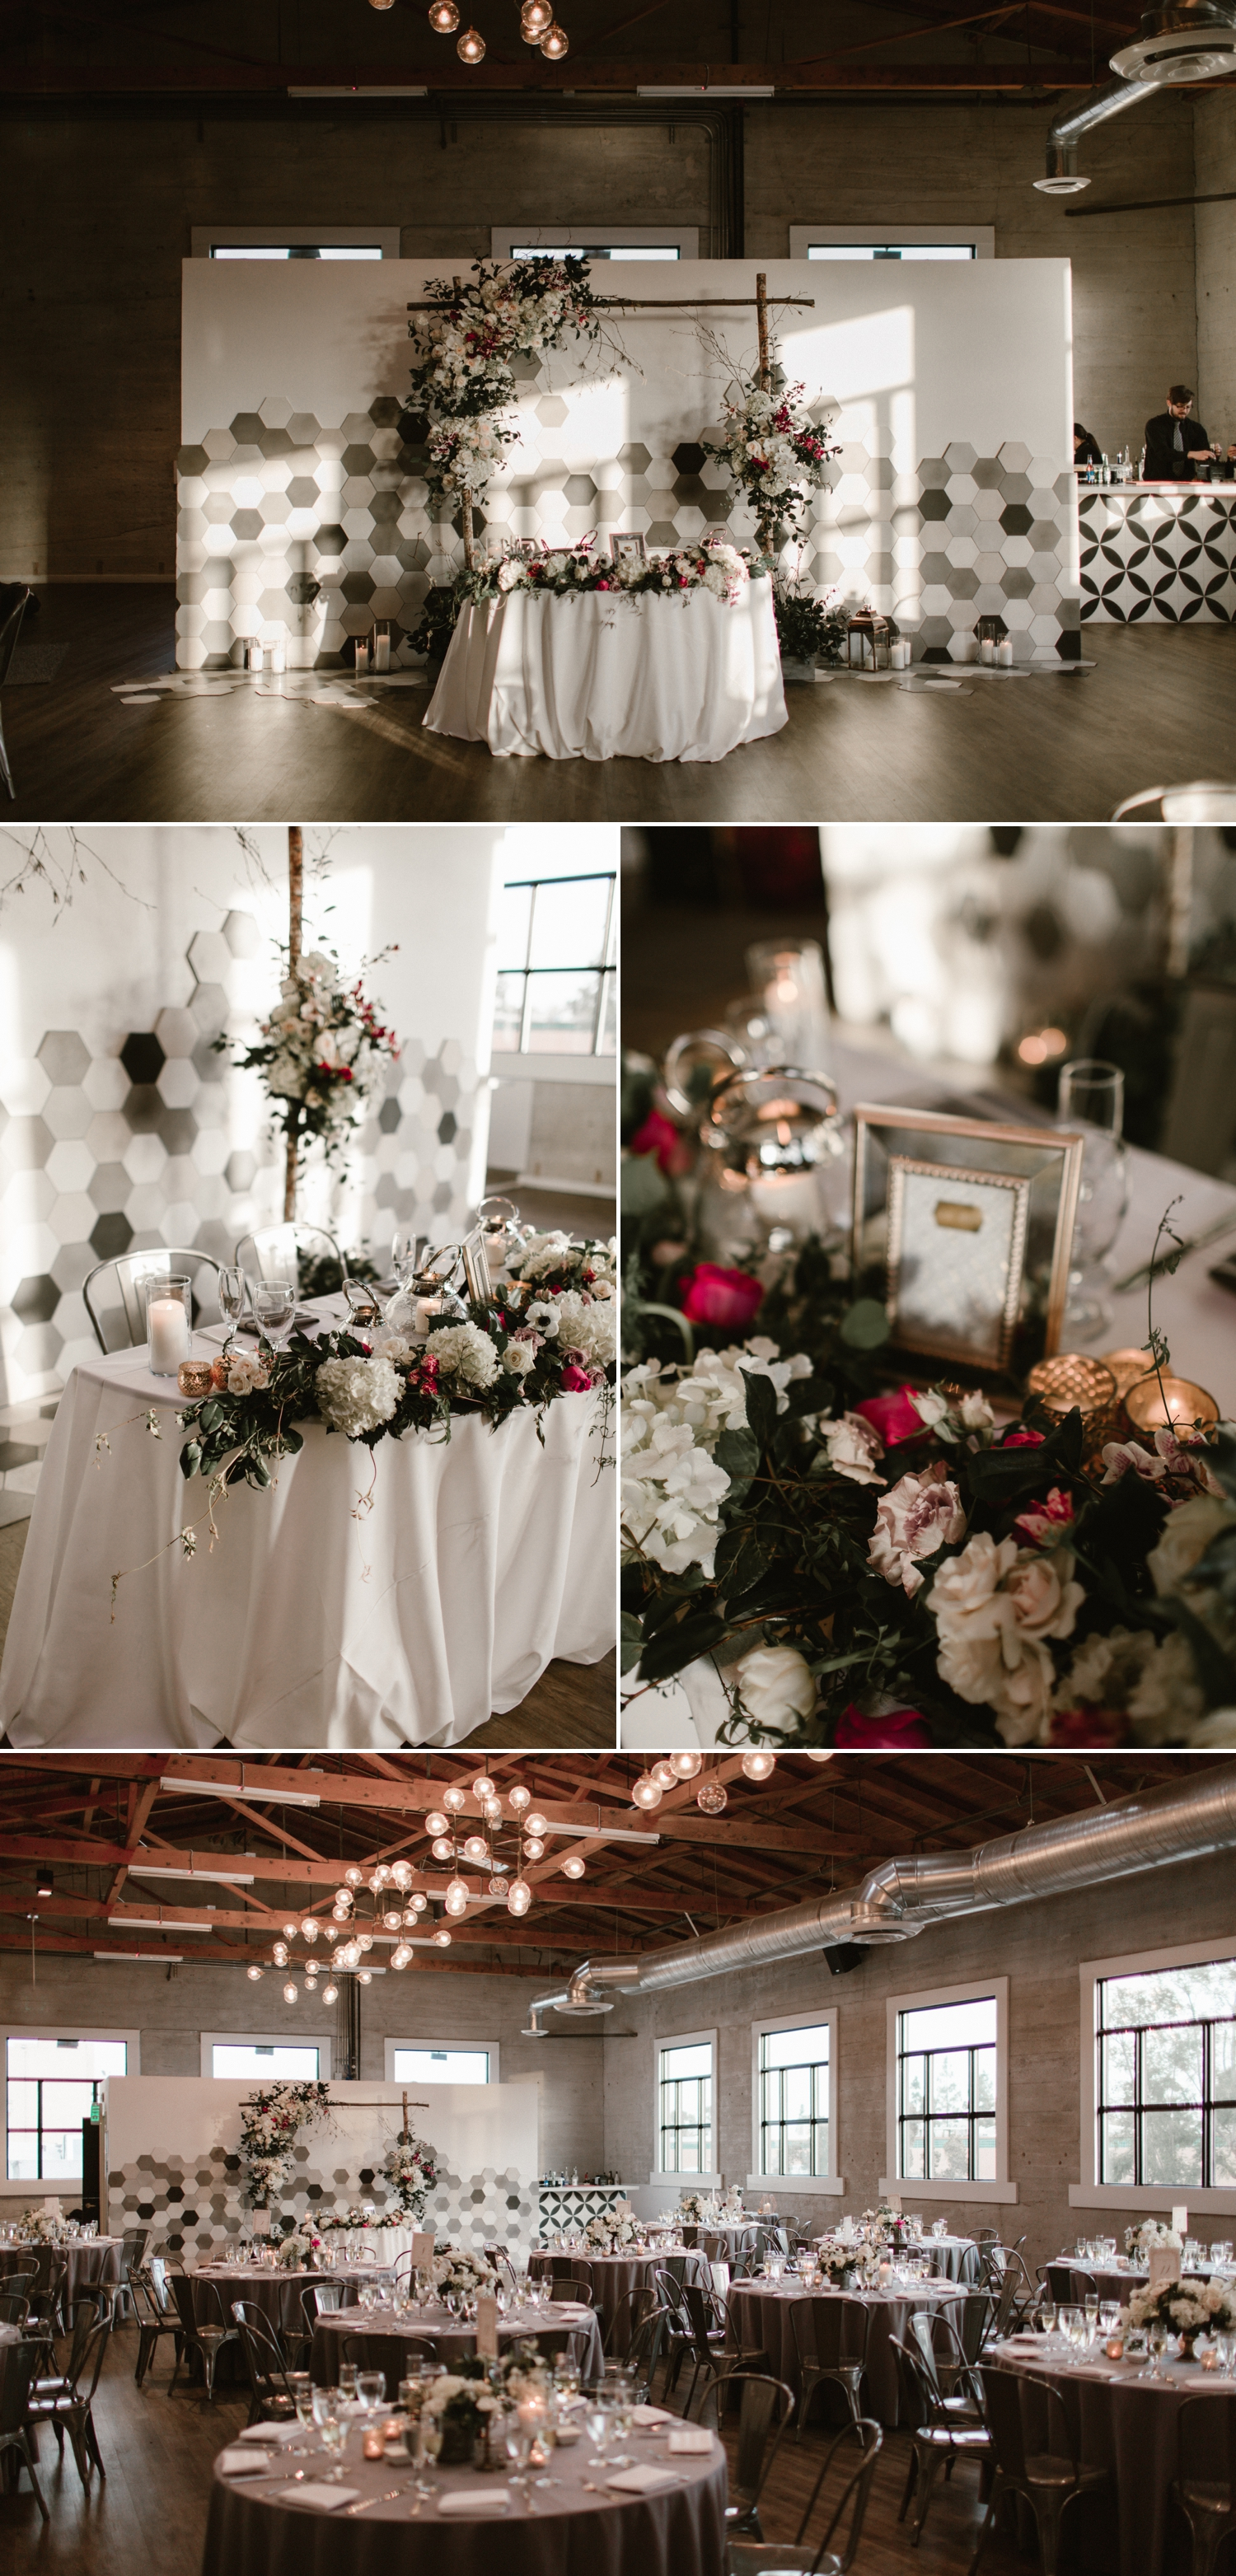 Sweetheart table, Indoor wedding reception at 1912 in Santa Ana by Paige Nelson